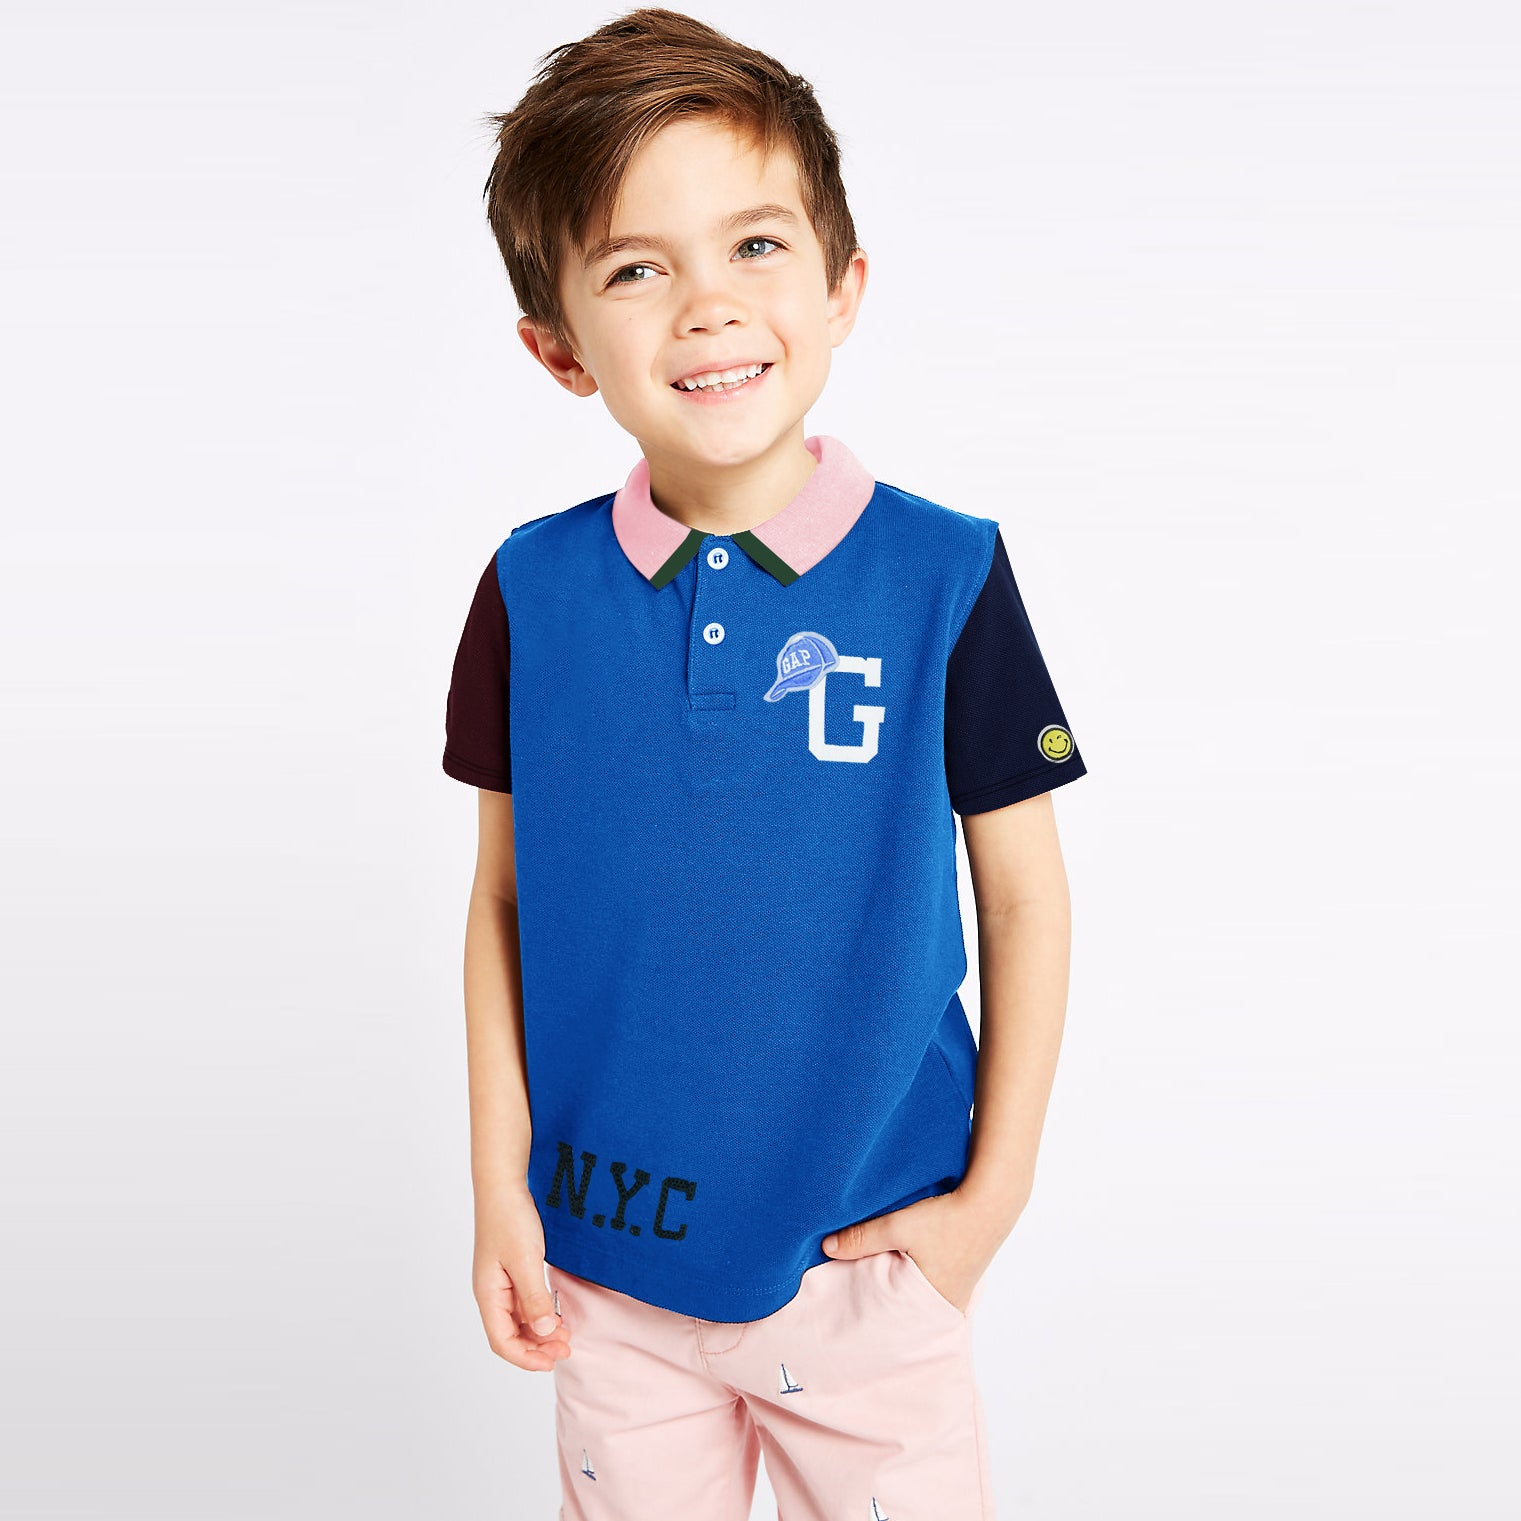 brandsego - GAP Half Sleeve P.Q Polo Shirt For Kids-BE8629